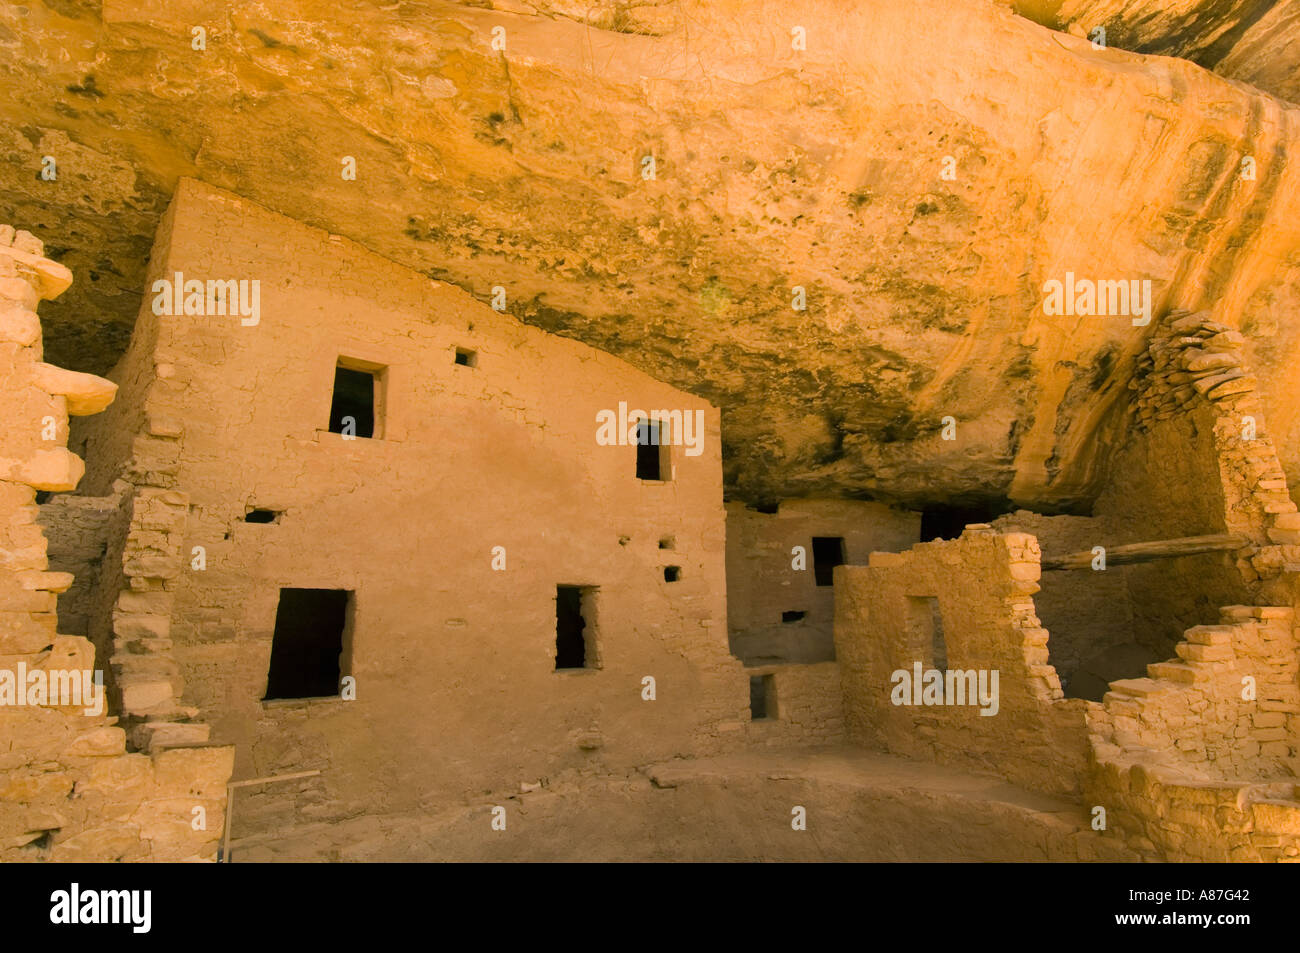 Spruce House Ruins, Mesa Verde National Park, Colorado, Well-preserved Anasazi Puebloan village - Stock Image